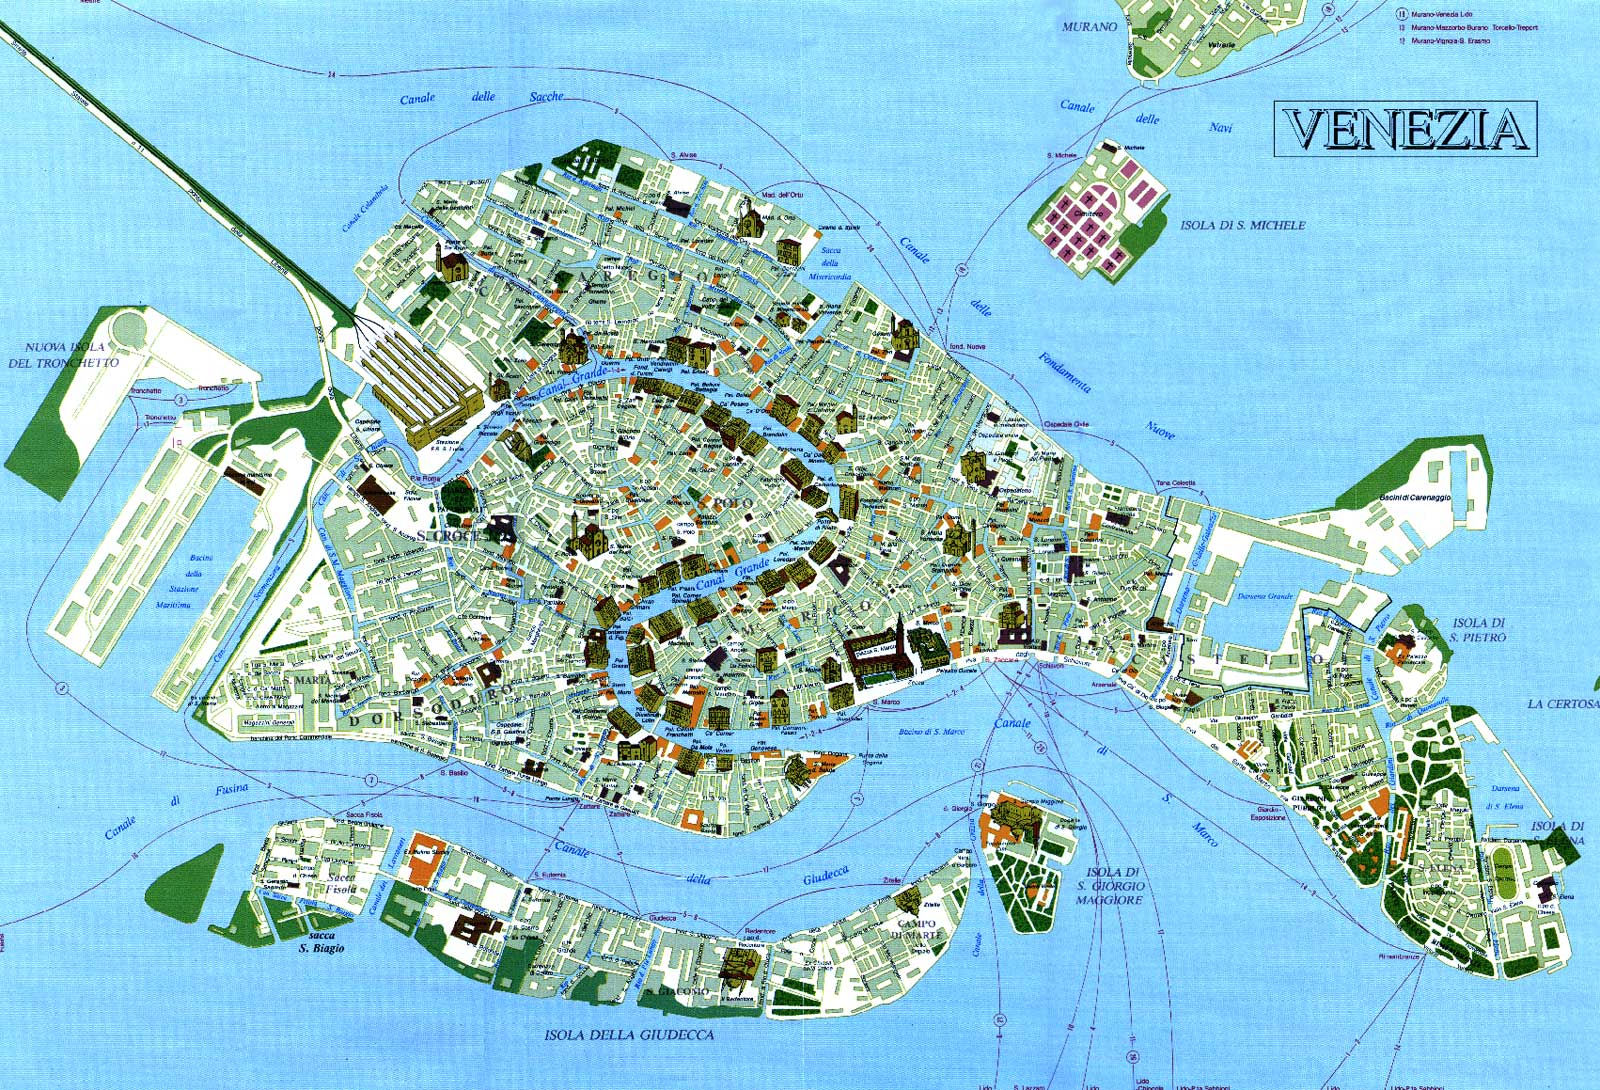 Tourist Map Venice (venezia) • Mapsof.net on map of santa fe springs area, map of st. augustine beach area, map of rhone river area, map of santa monica pier area, map of dr phillips area, map of l.a. area, map of north shore area, map of winter haven area, map of macdill air force base area, map of san fernando valley area, map of mexico beach area, map of new port richey area, map of woodhull area, map of athens area, map of wrightwood area, map of pomona area, map of monrovia area, map of mission bay area, map of provence area, map of martha's vineyard area,